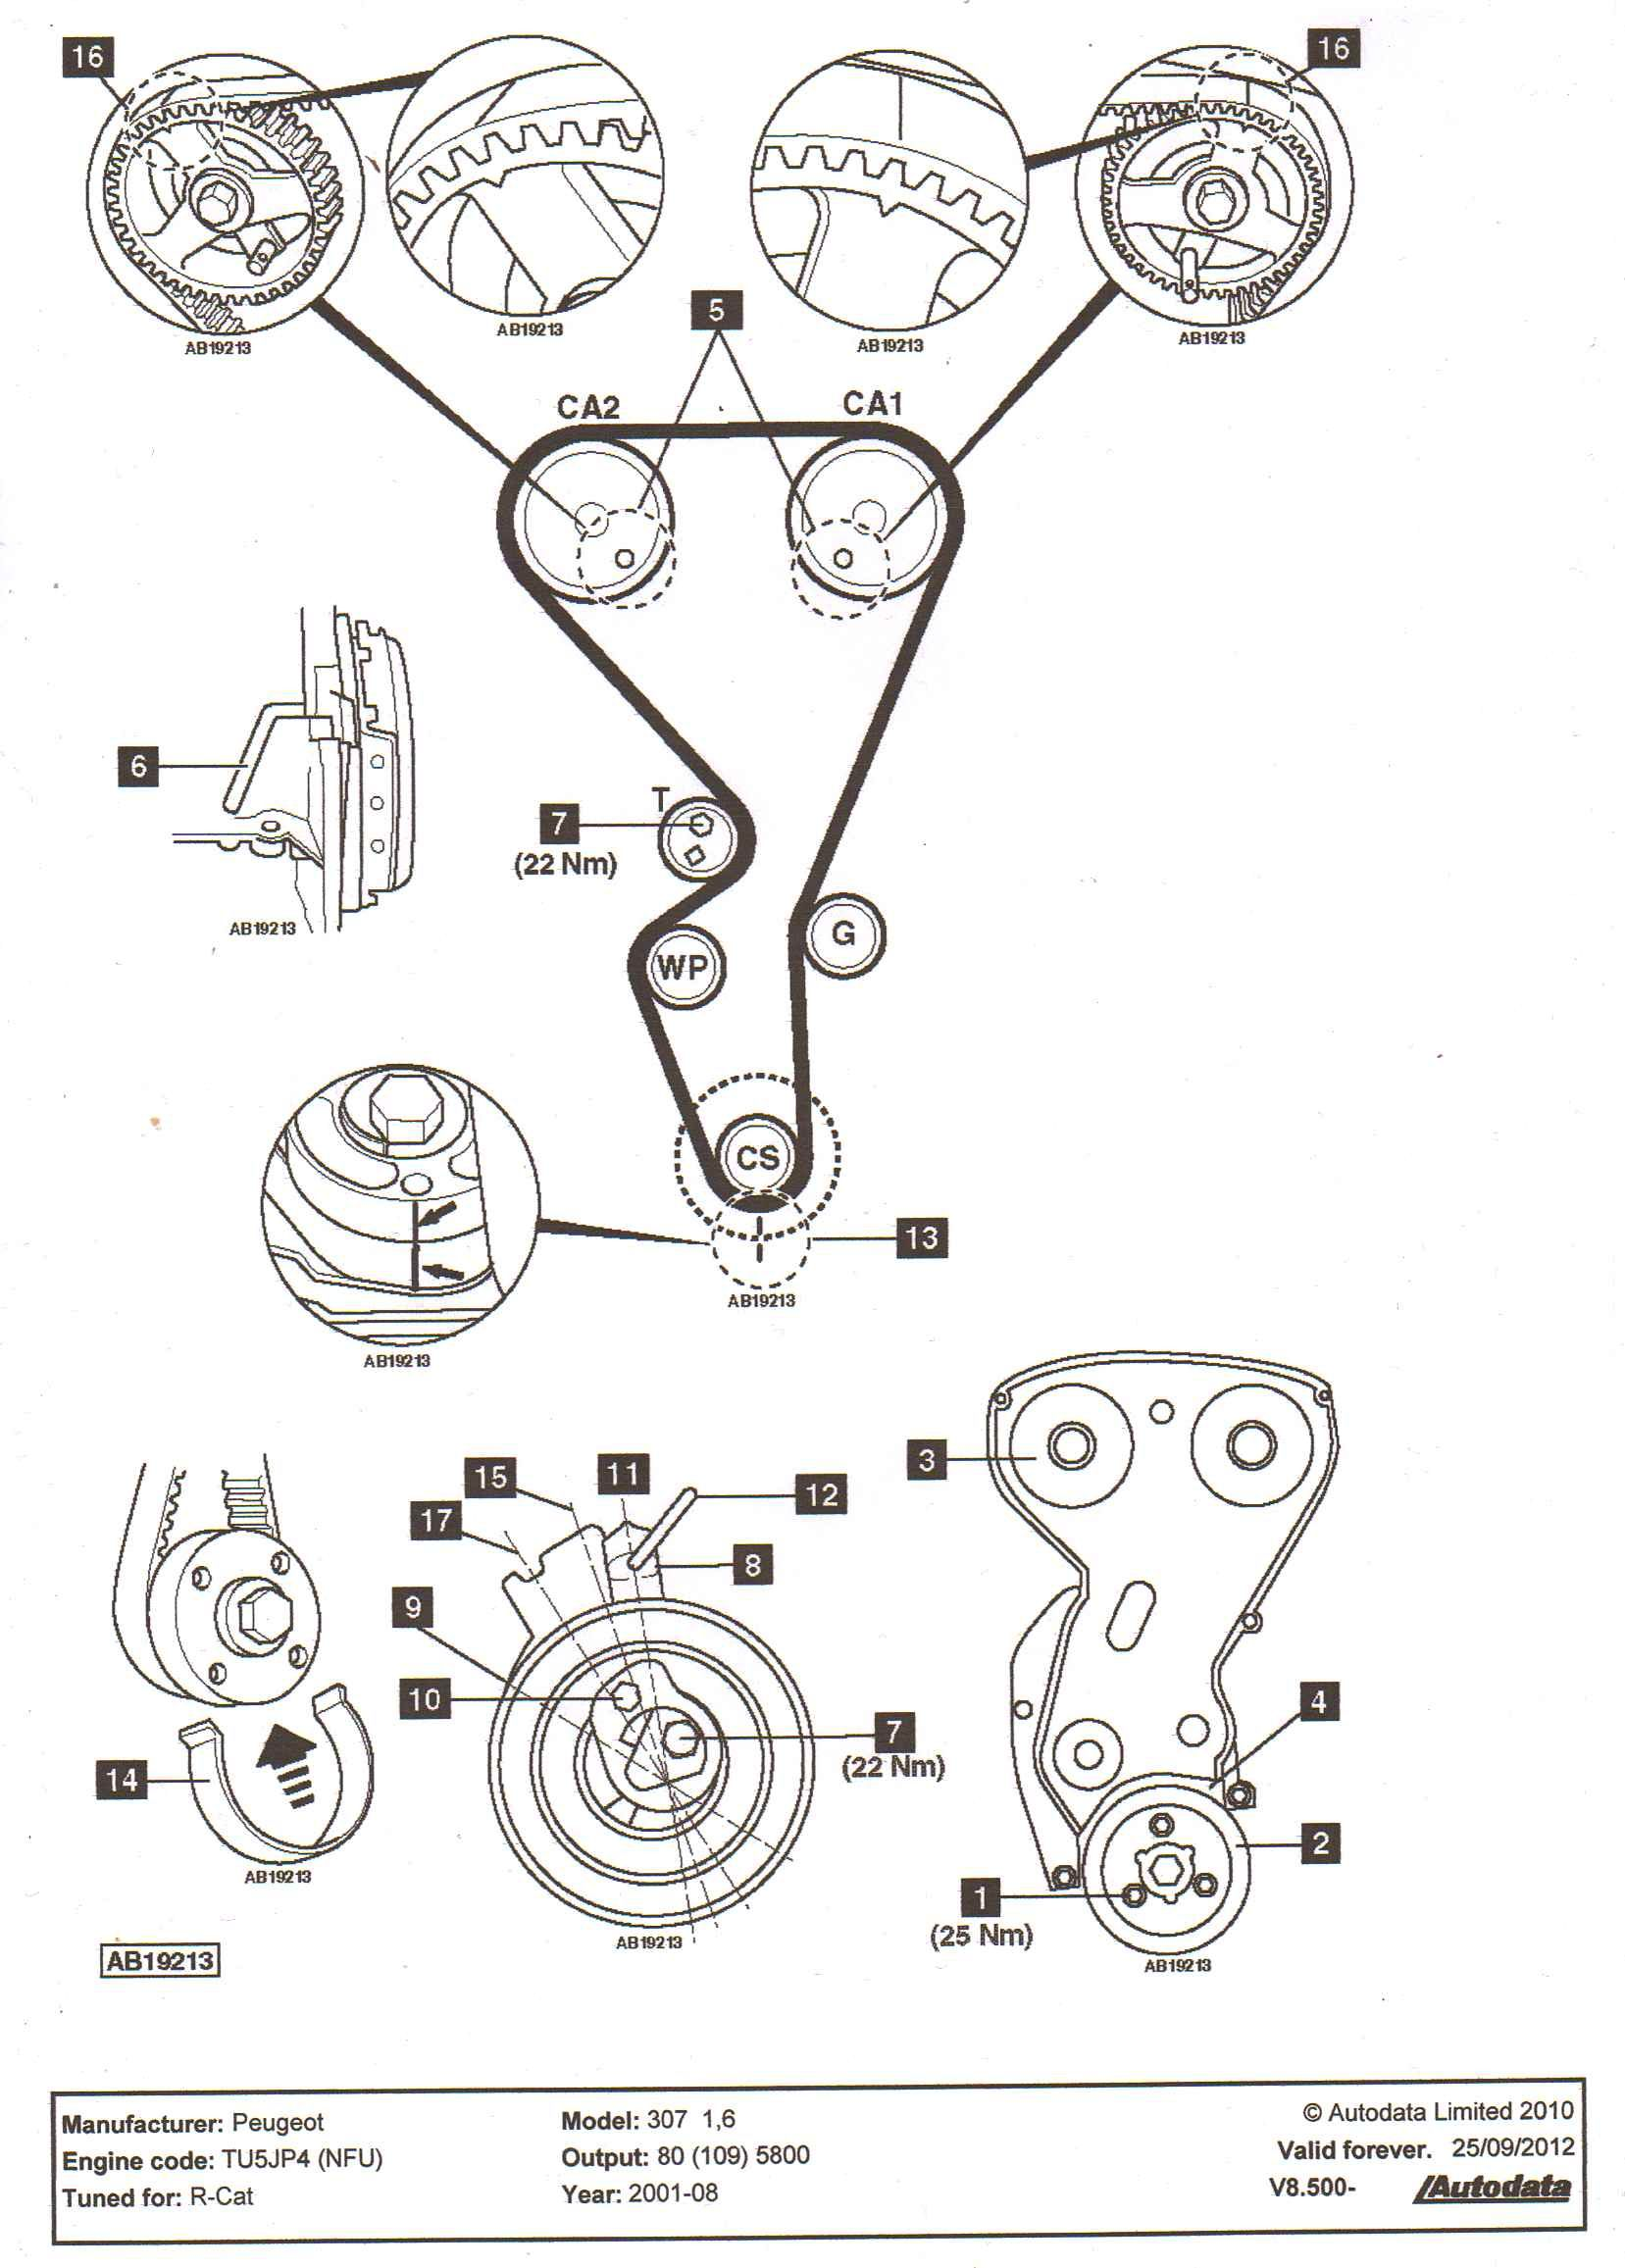 peugeot 307 1.6 engine diagram